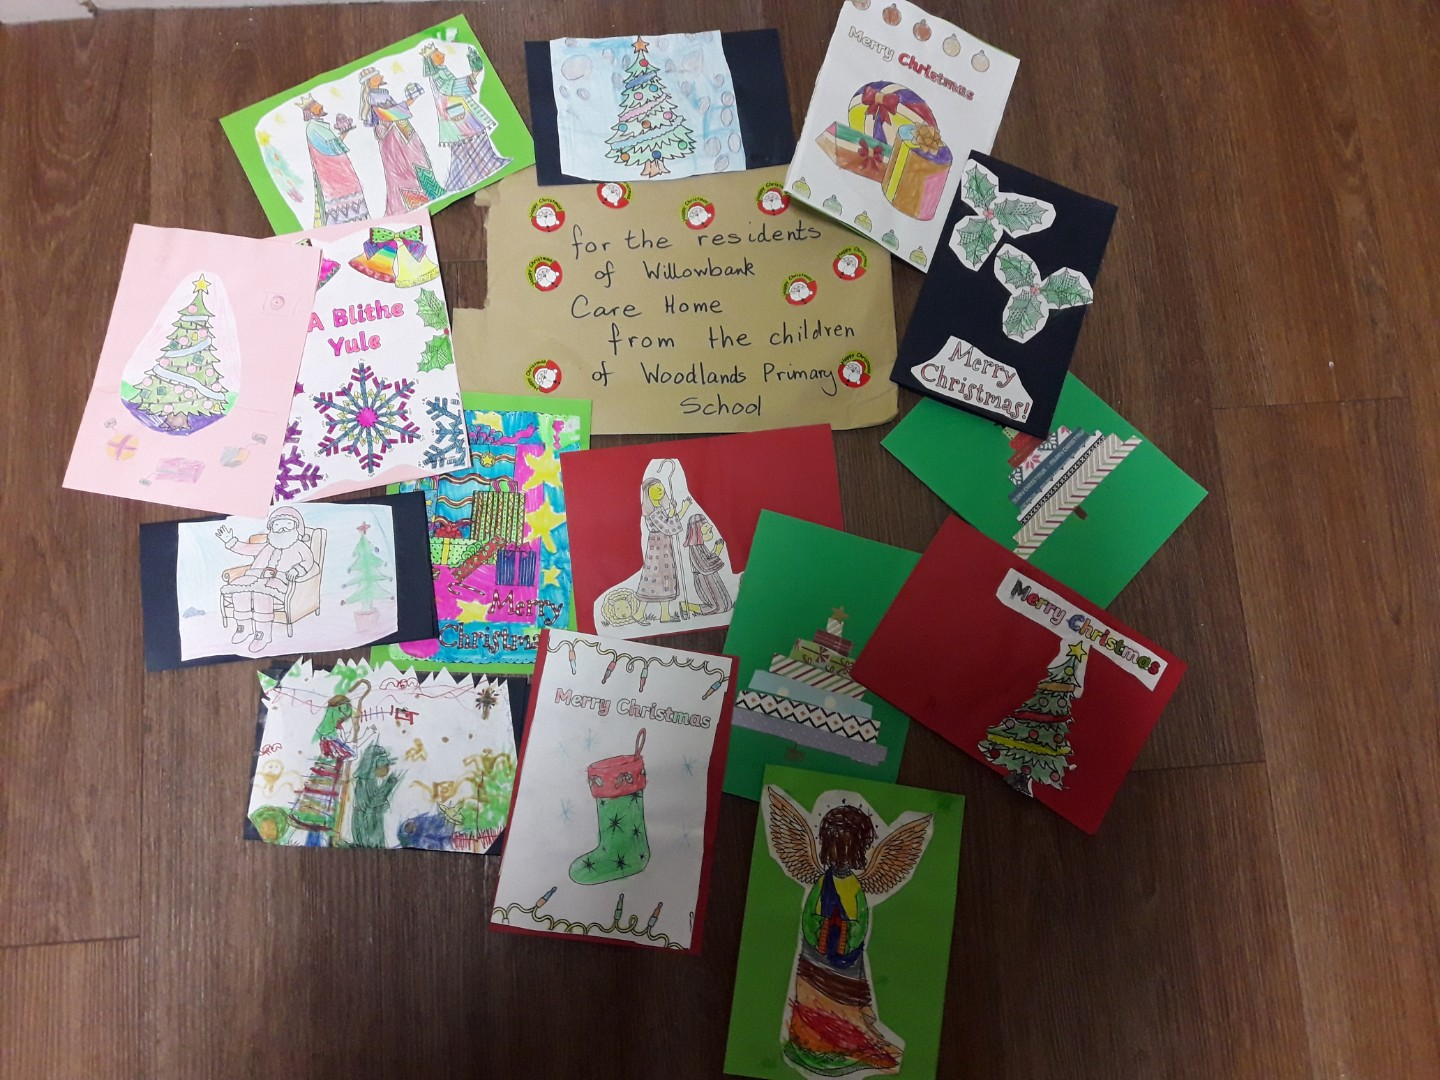 Local school children make Christmas cards for Willowbank residents